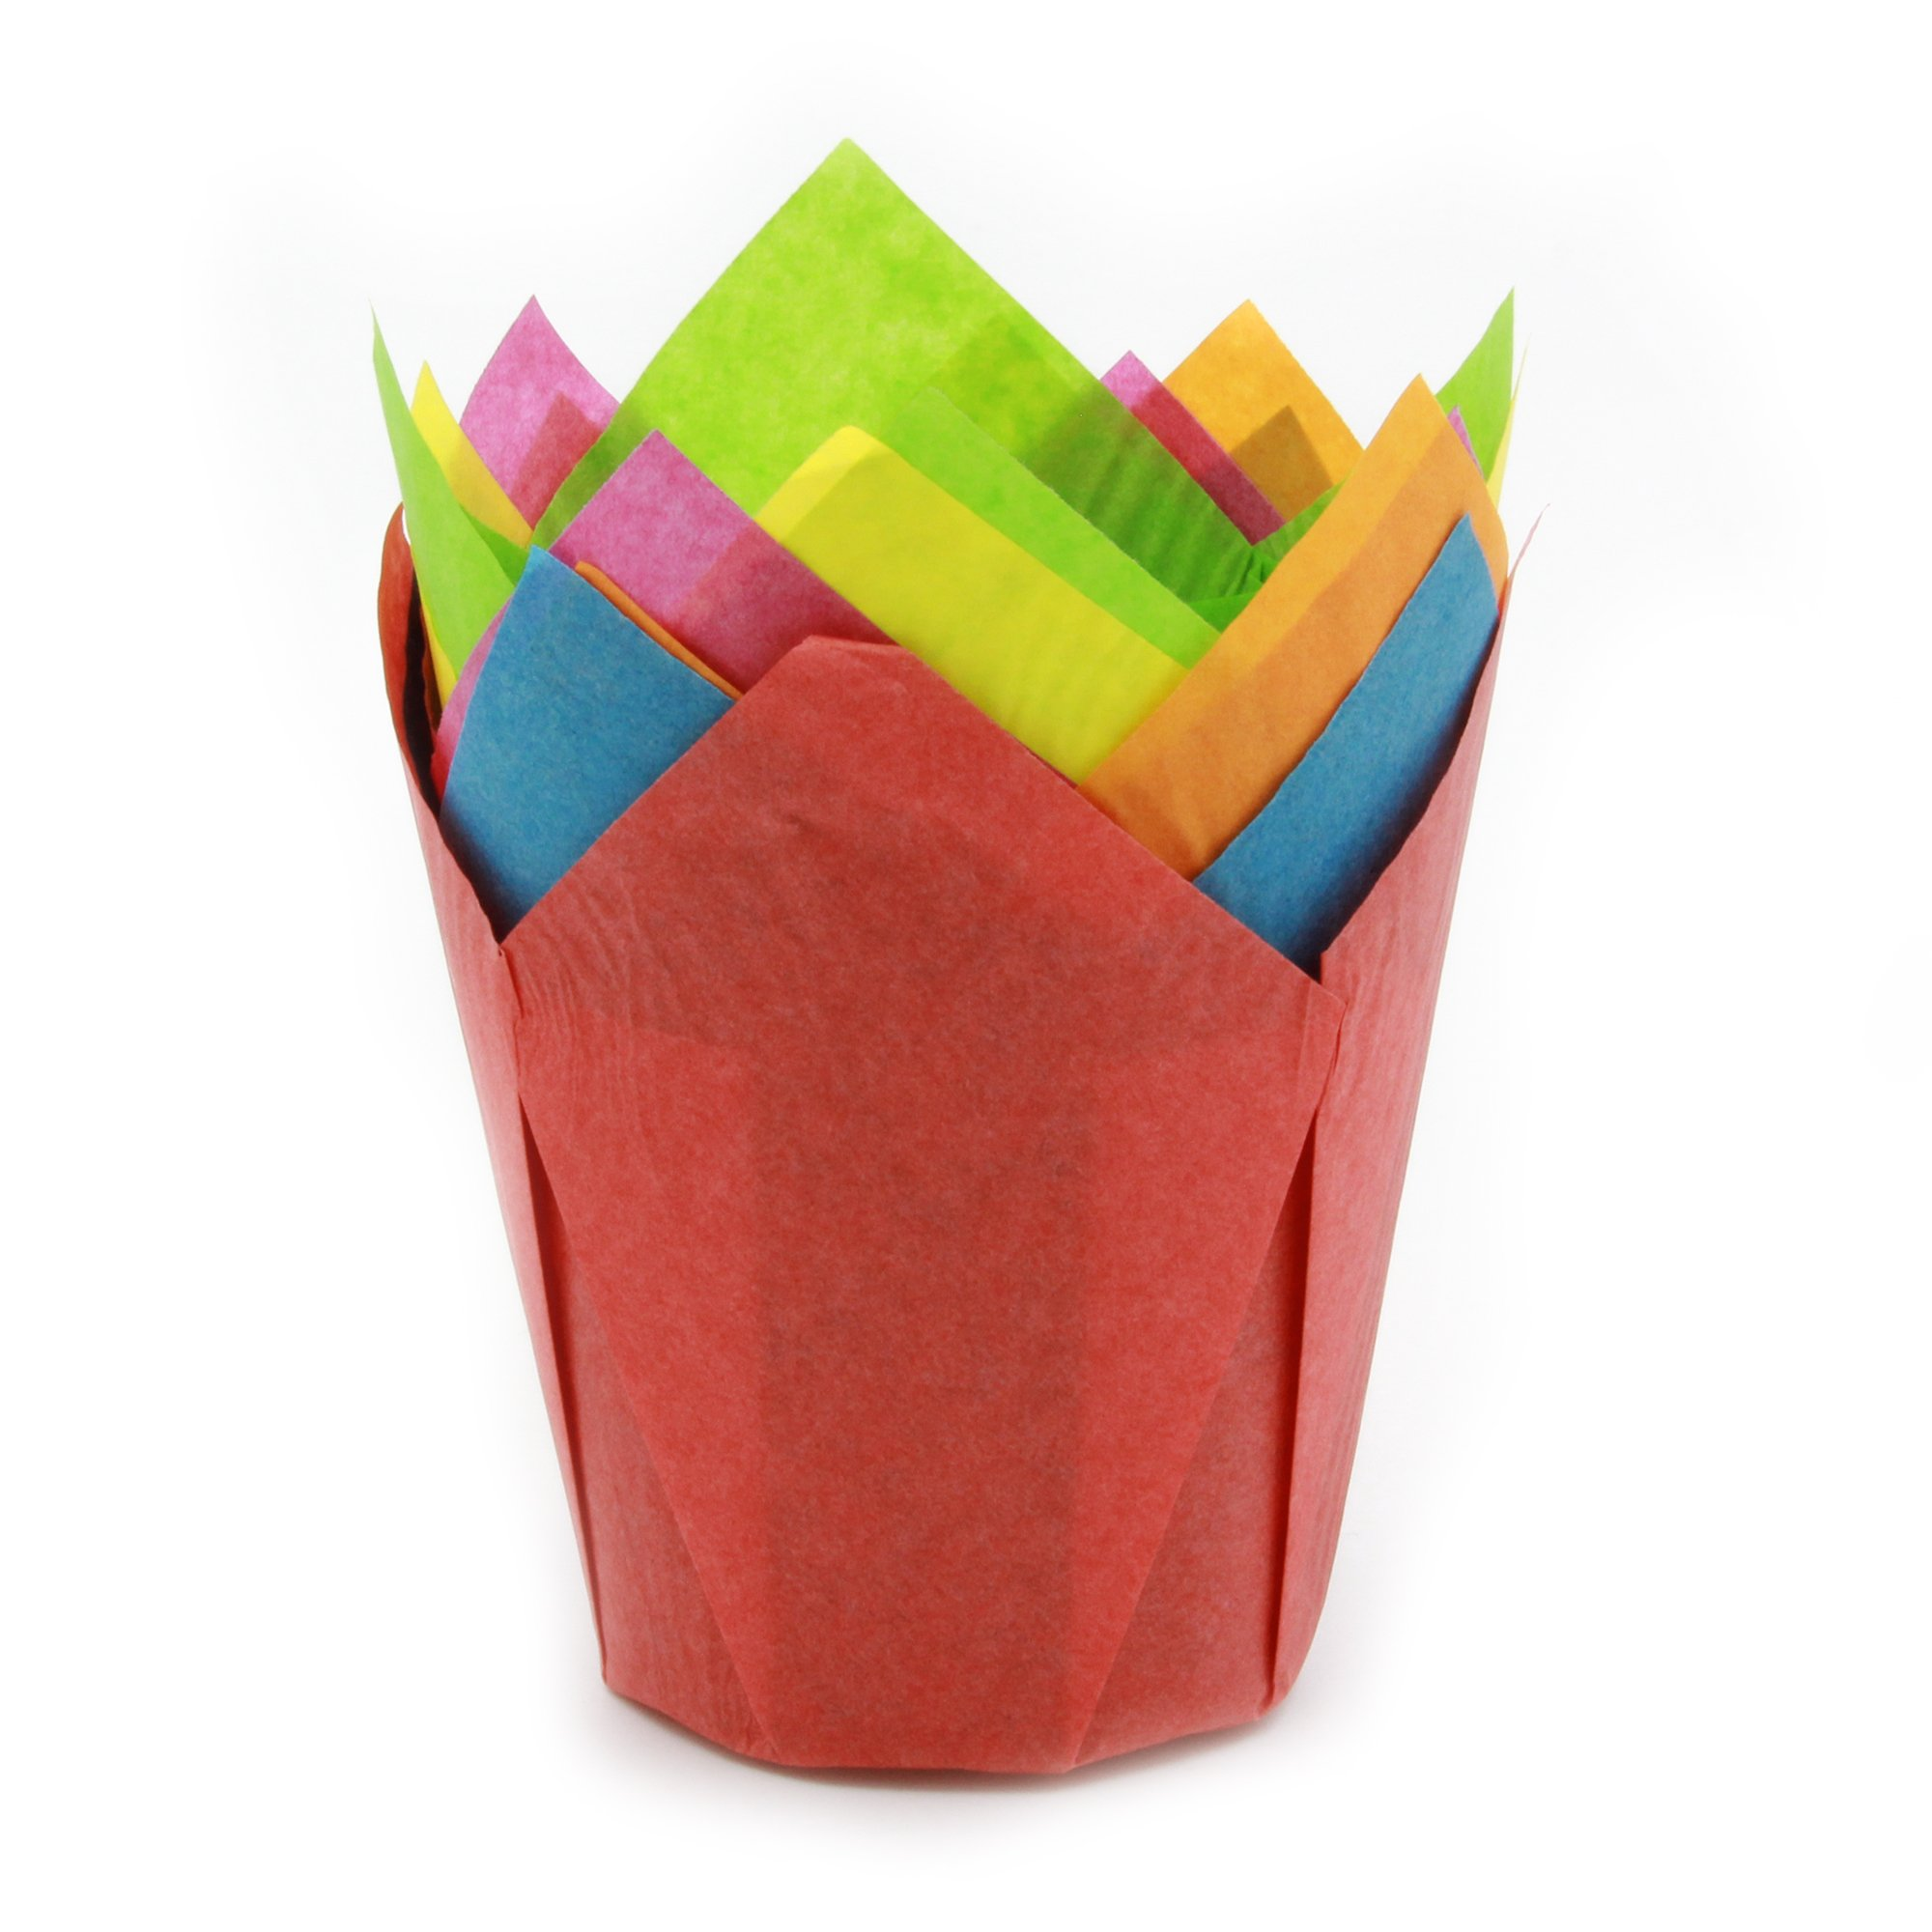 """Tulip Cupcake Liner Multi-Color Paper Baking Cups easy Release Muffin cup / No need To Spray Cup Perfect for Baking Muffins and Cupcakes, Extra Large Size: Tip H 3-1/2"""" x 2"""",(3200 pcs)"""